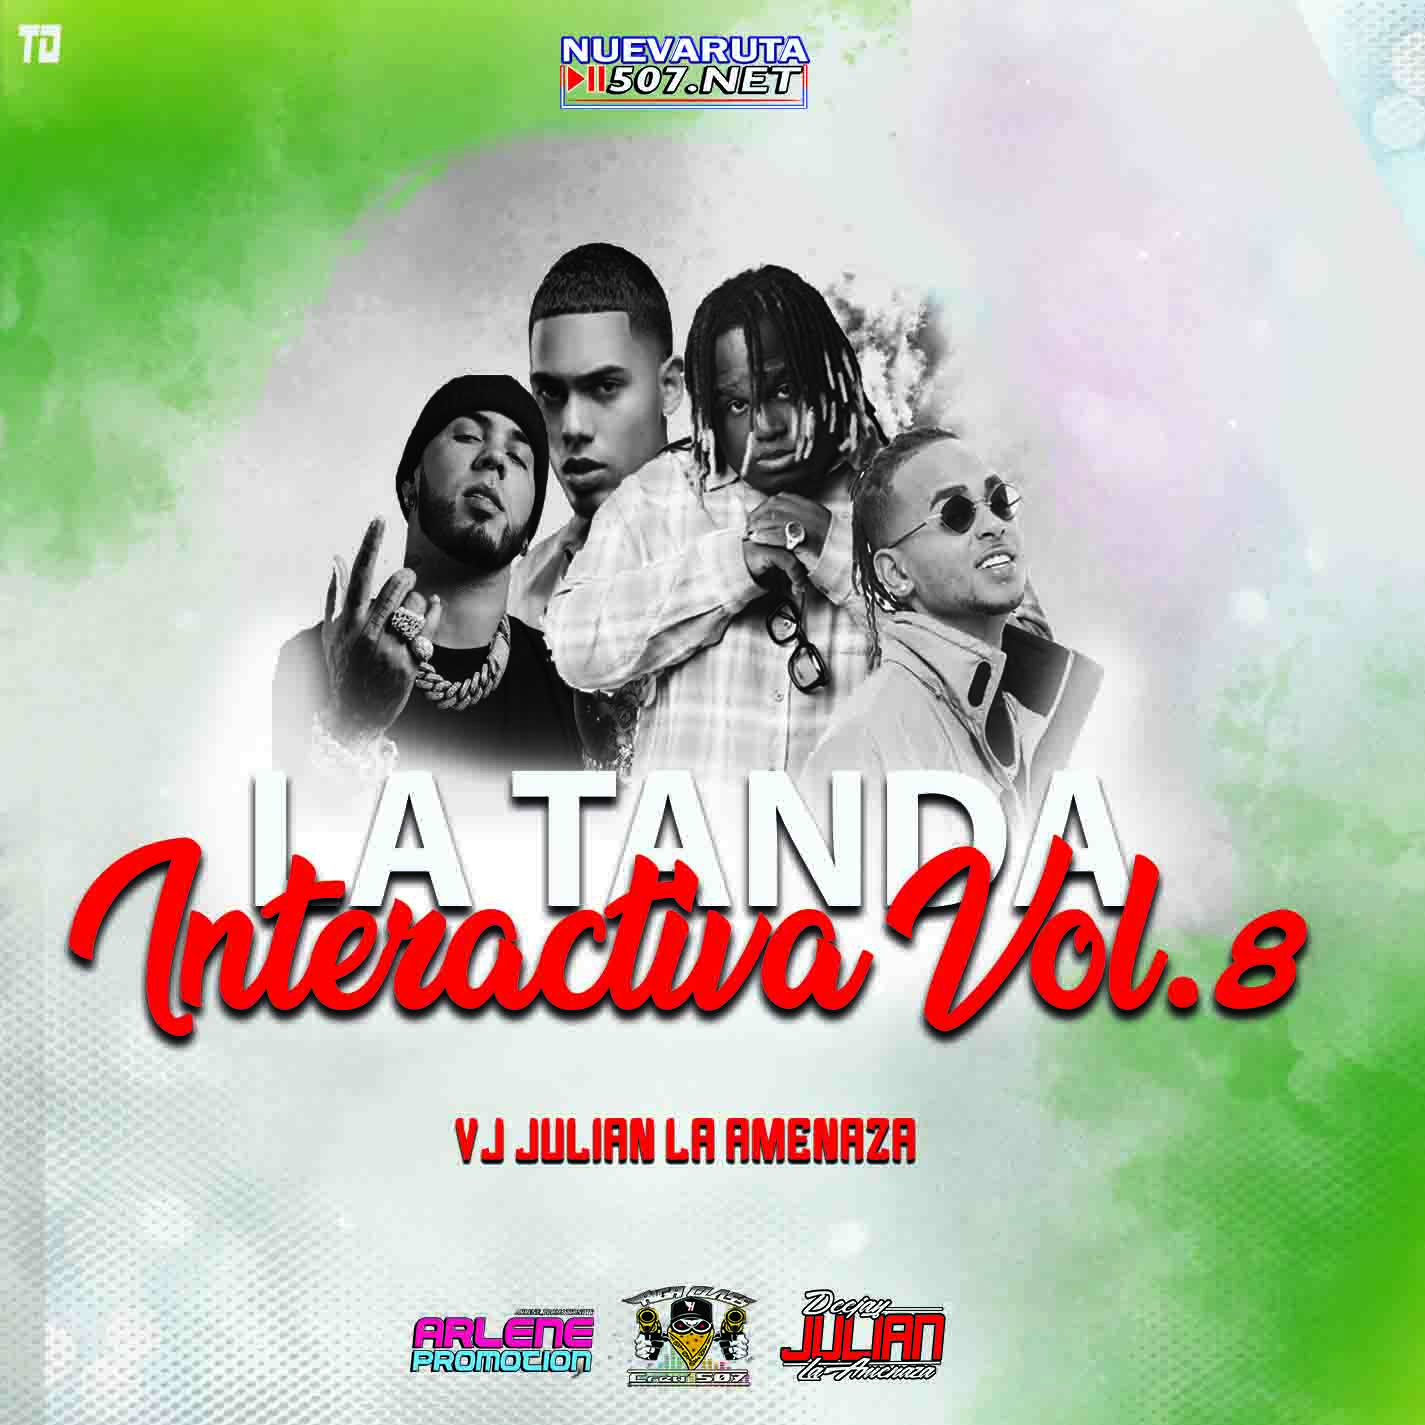 La Tanda Interactiva Vol 8 BY Vj Julian La Amenaza x Nueva Ruta 507.mp3